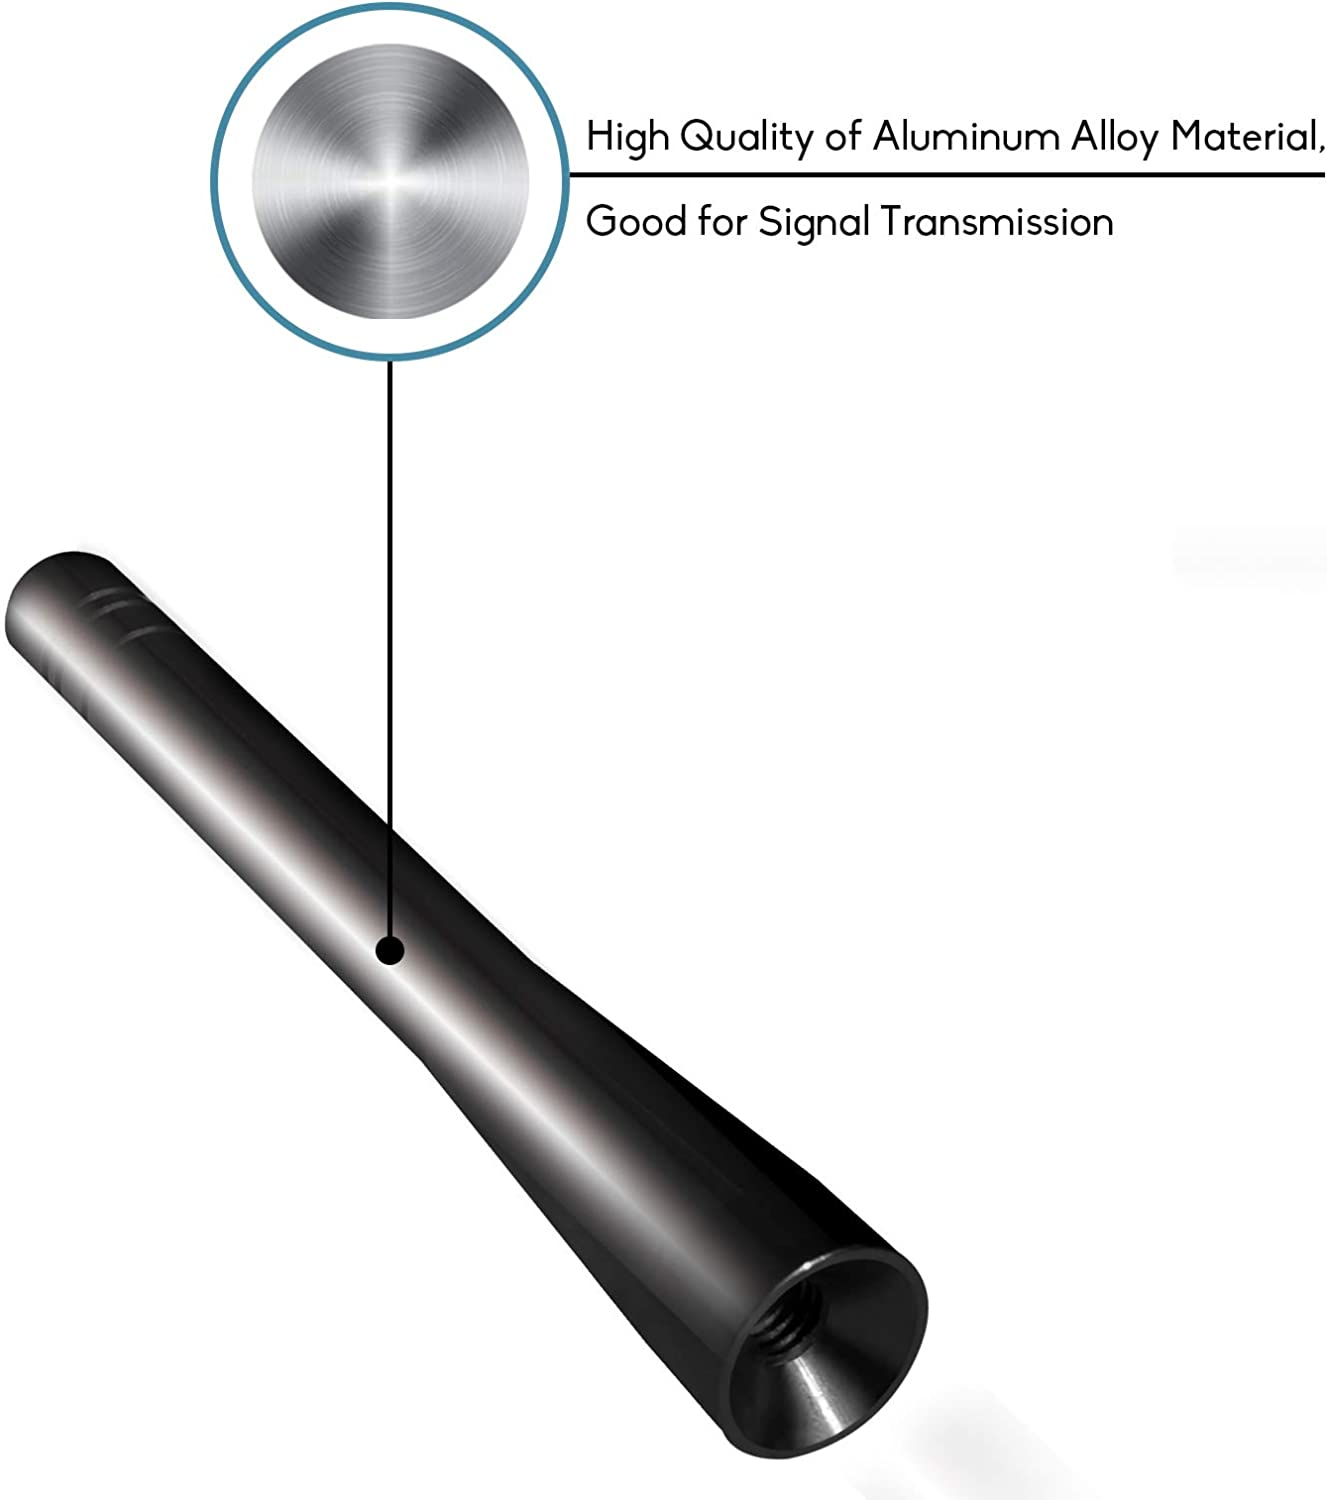 DeepRoar Automotive Replacement Antenna Fit for Honda S2000 1999-2009 Vehicle Electronics Accessories of Good AM//FM Reception Signal 4 in Black